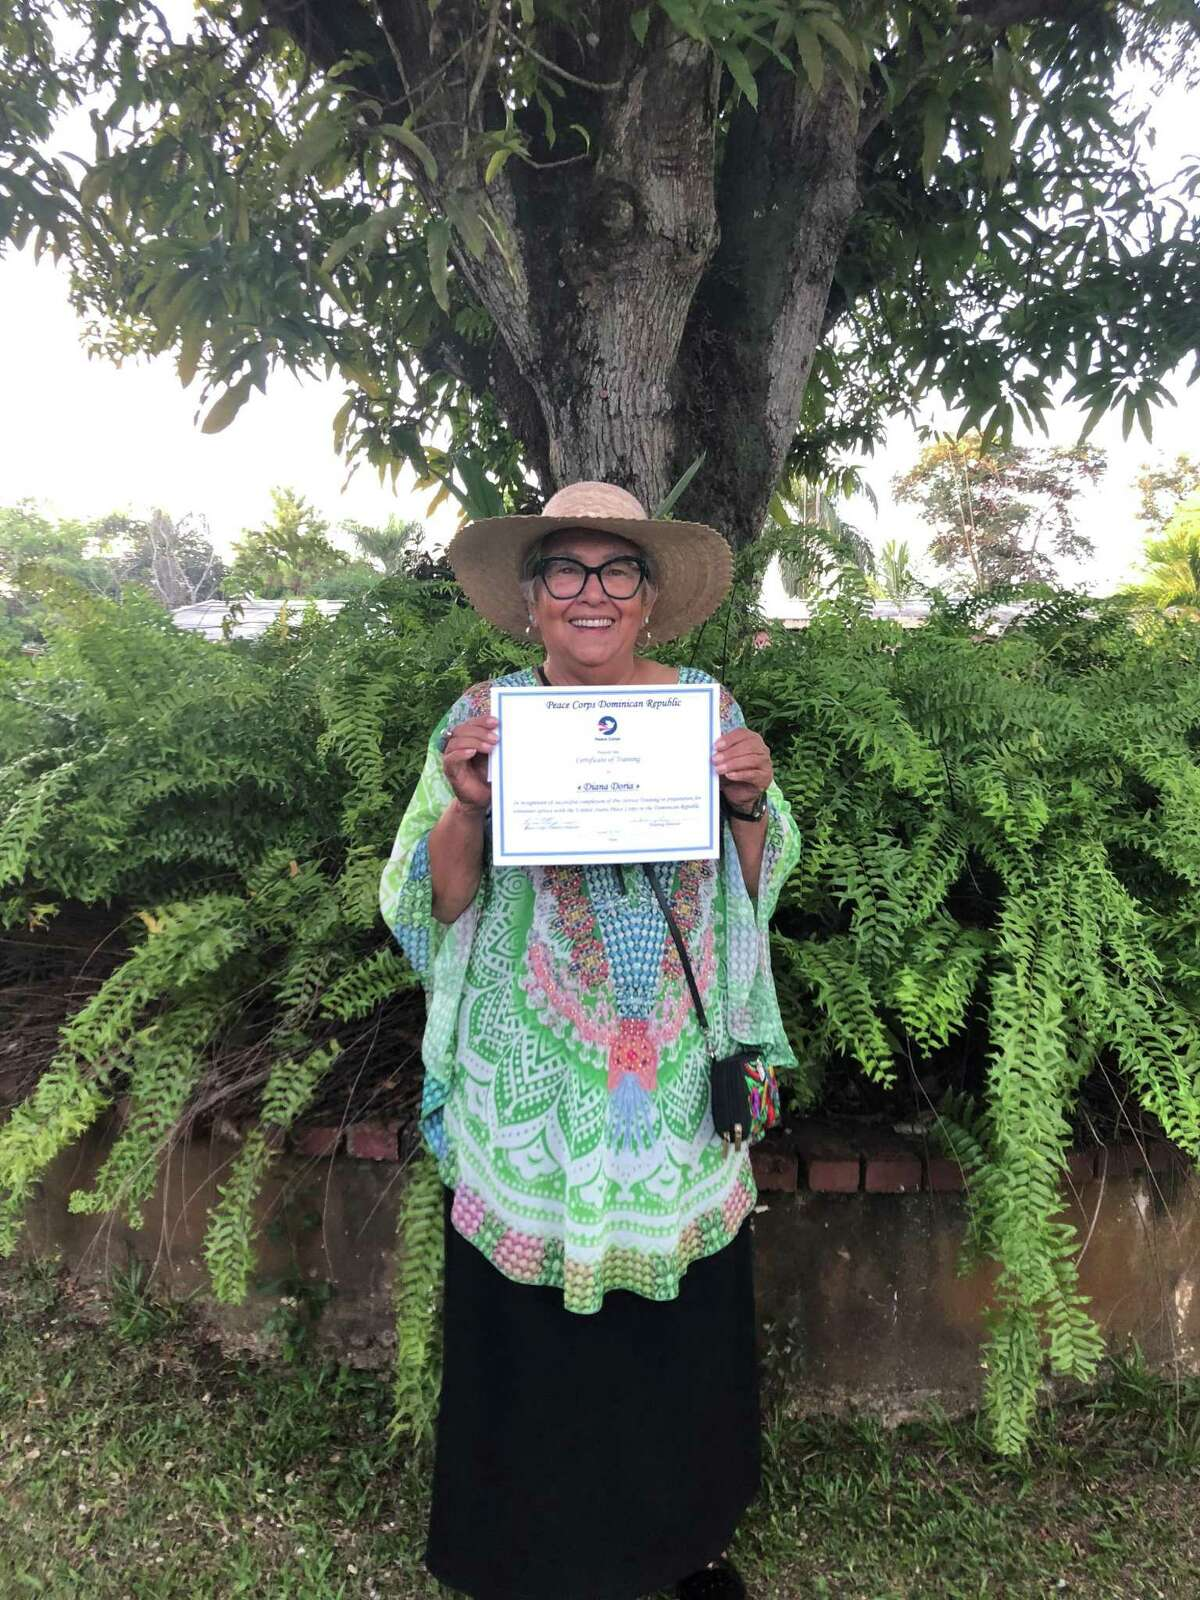 Peace Corps volunteer Diana Doria holds her certificate of completion in October 2019 after weeks of training in Santo Domingo, Dominican Republic. Doria was one of more than 7,000 volunteers recalled from 60 countries after the coronavirus outbreak.